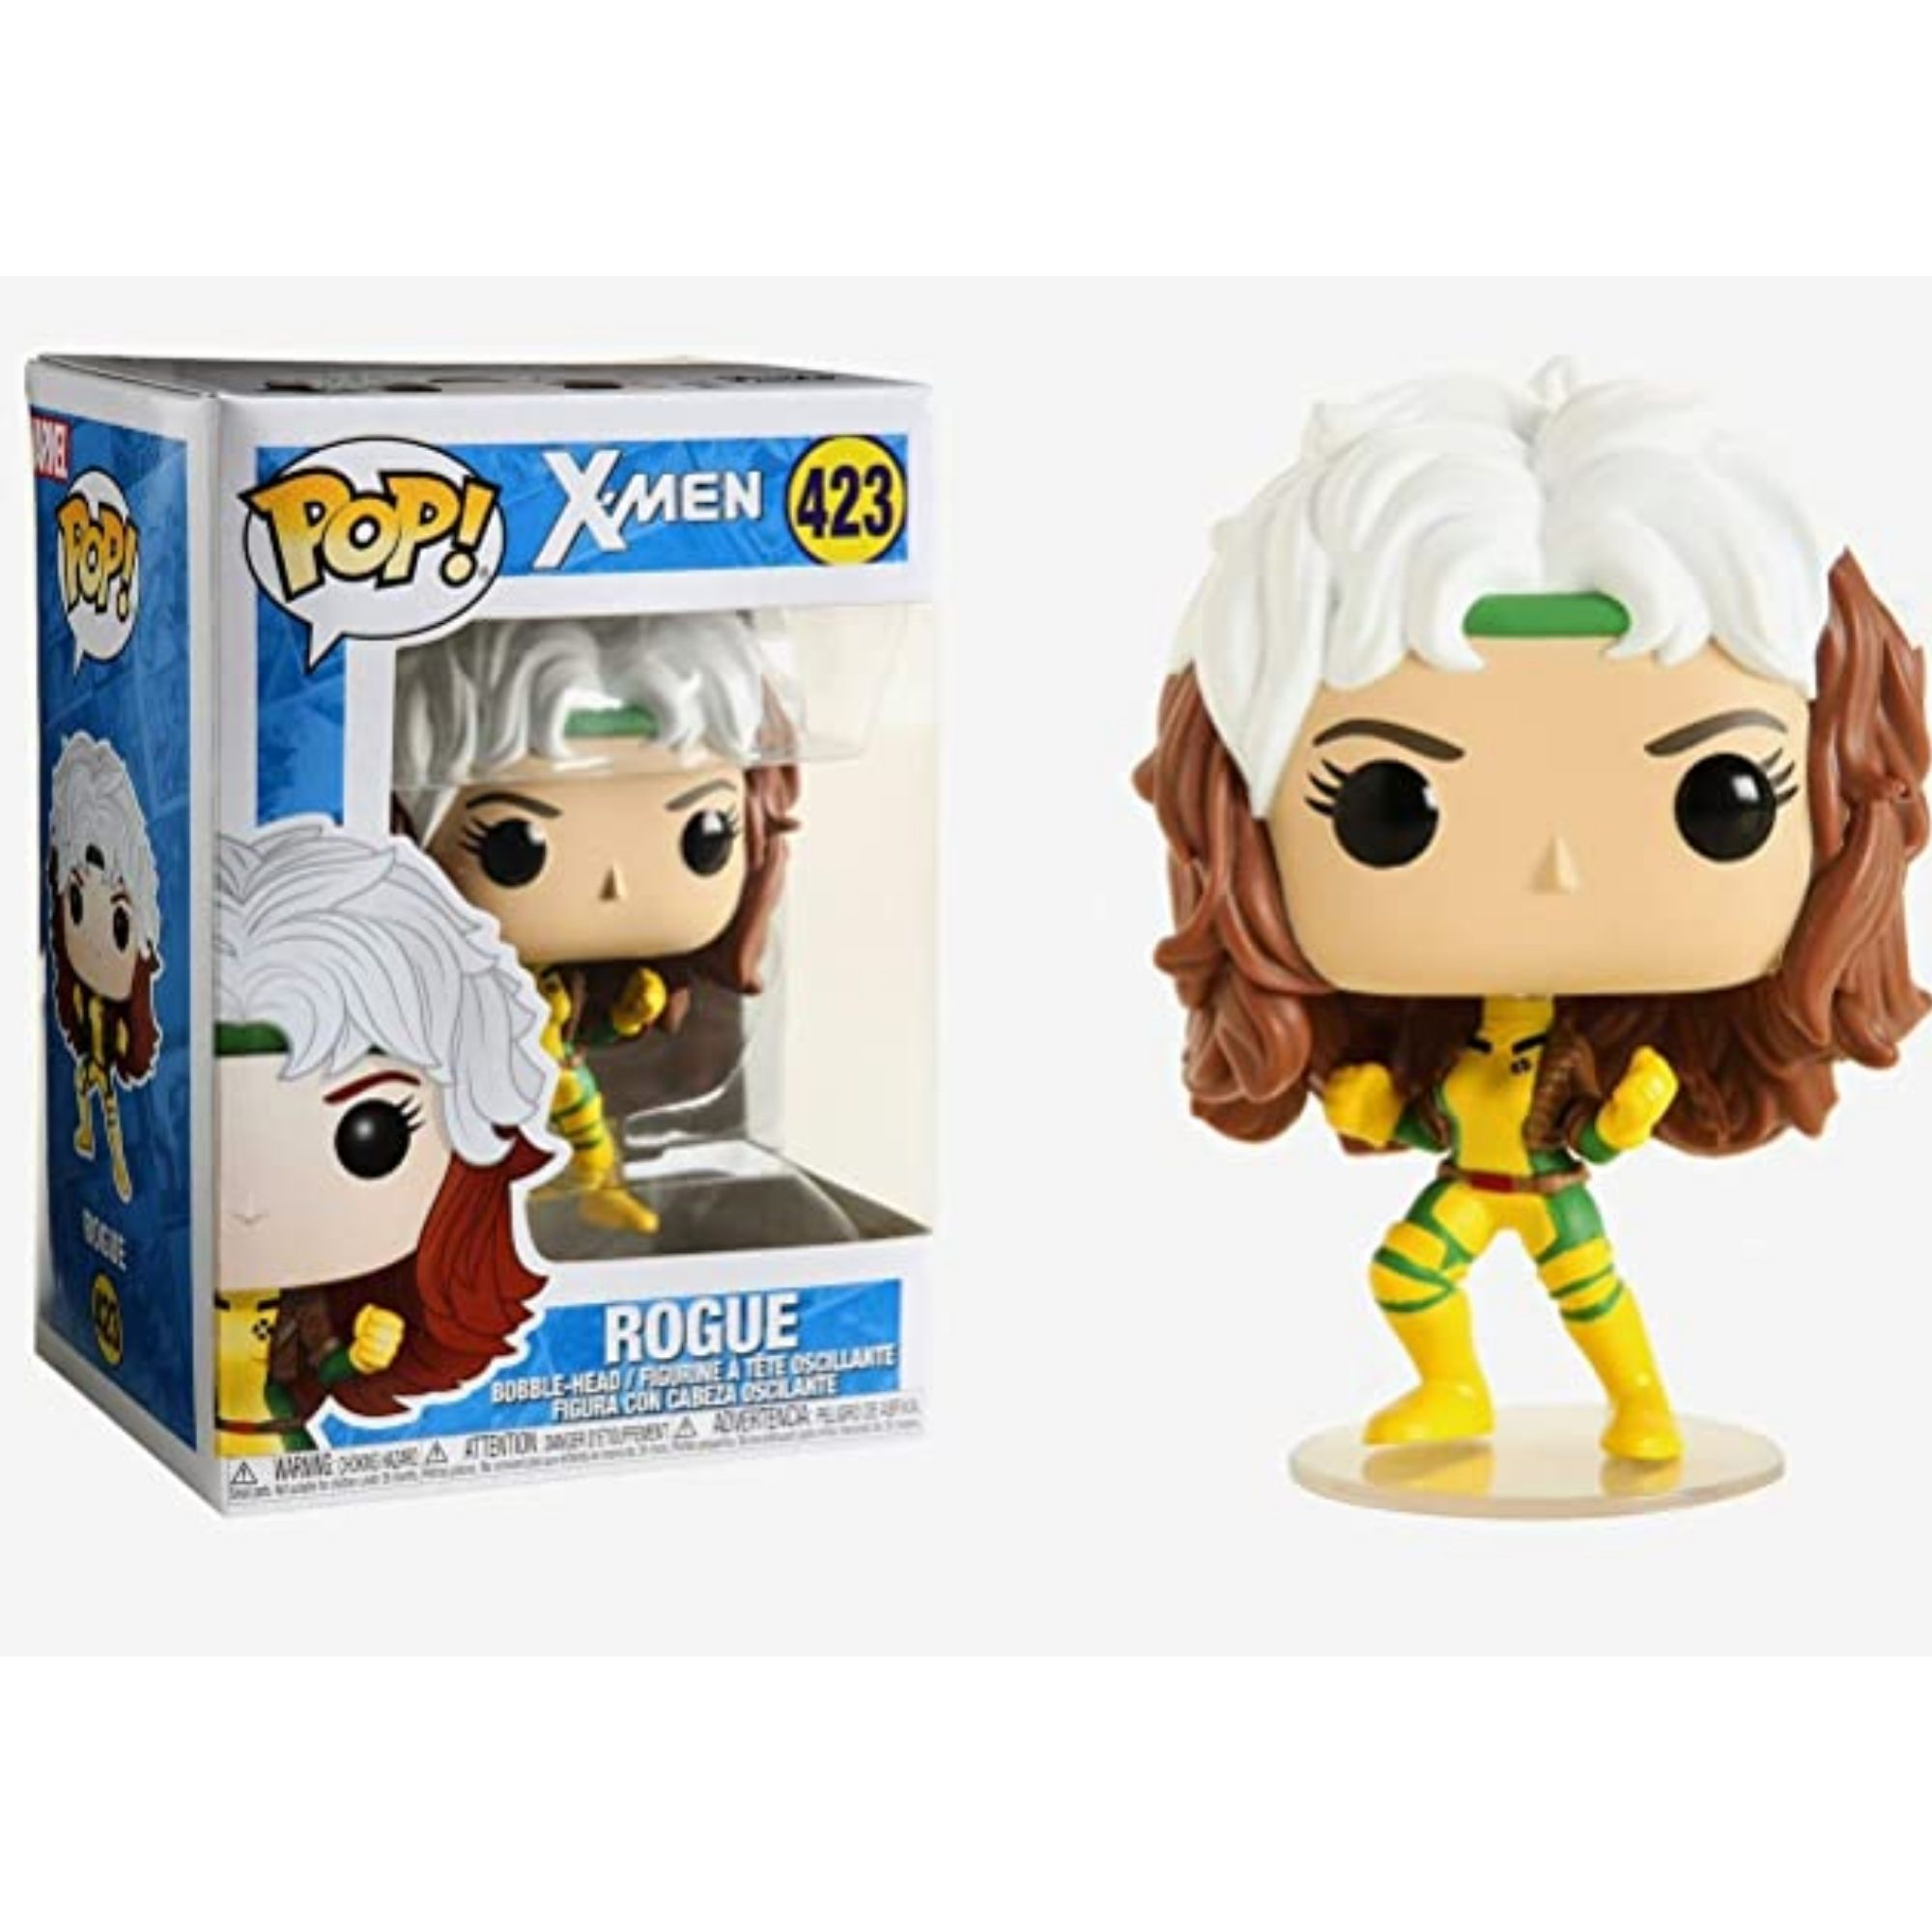 Boneco Funko Pop Marvel Rogue X-Men #423  - Game Land Brinquedos